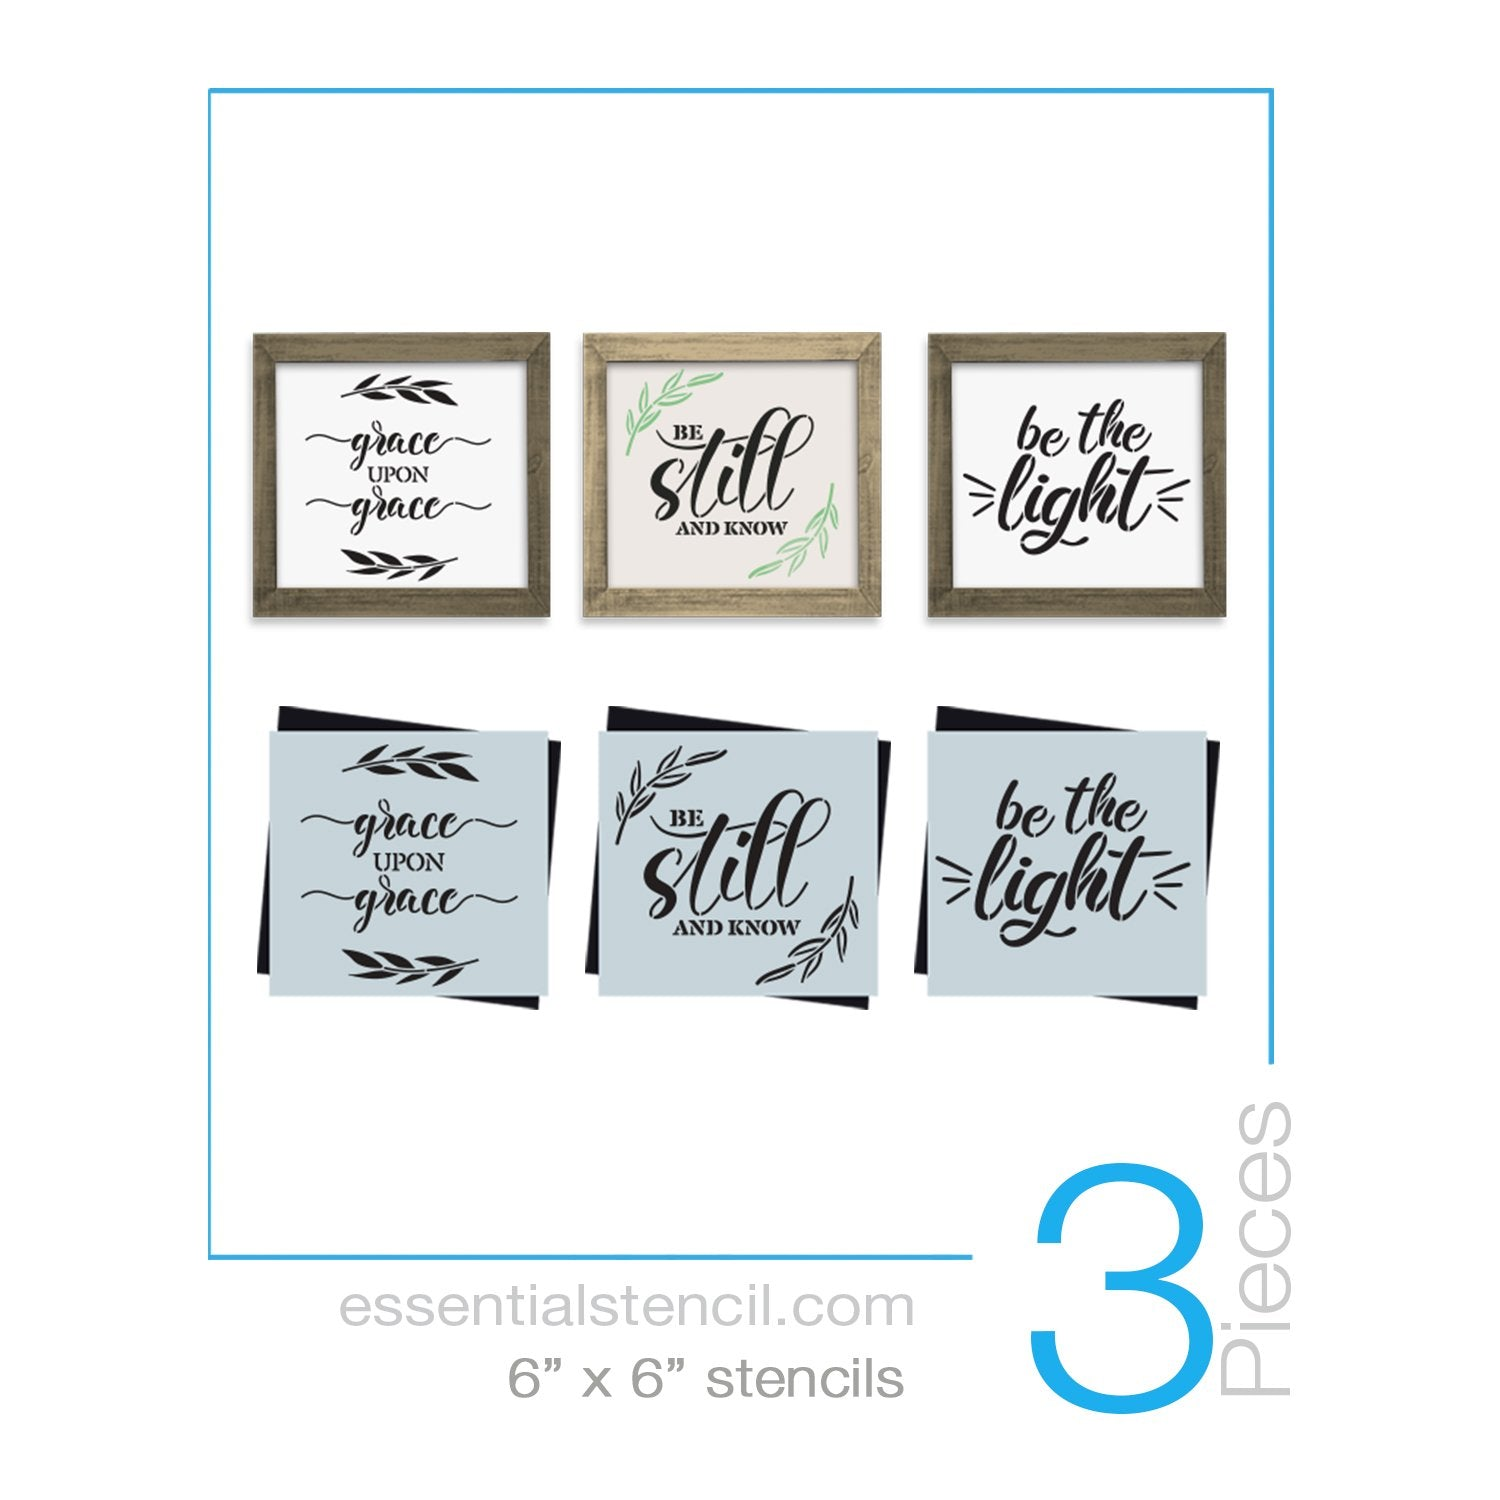 DIY reusable scripture stencils, faith sign stencils, grace upon grace sign stencil, be still and know sign stencil, be the light sign stencil, mini bible verse sign stencils